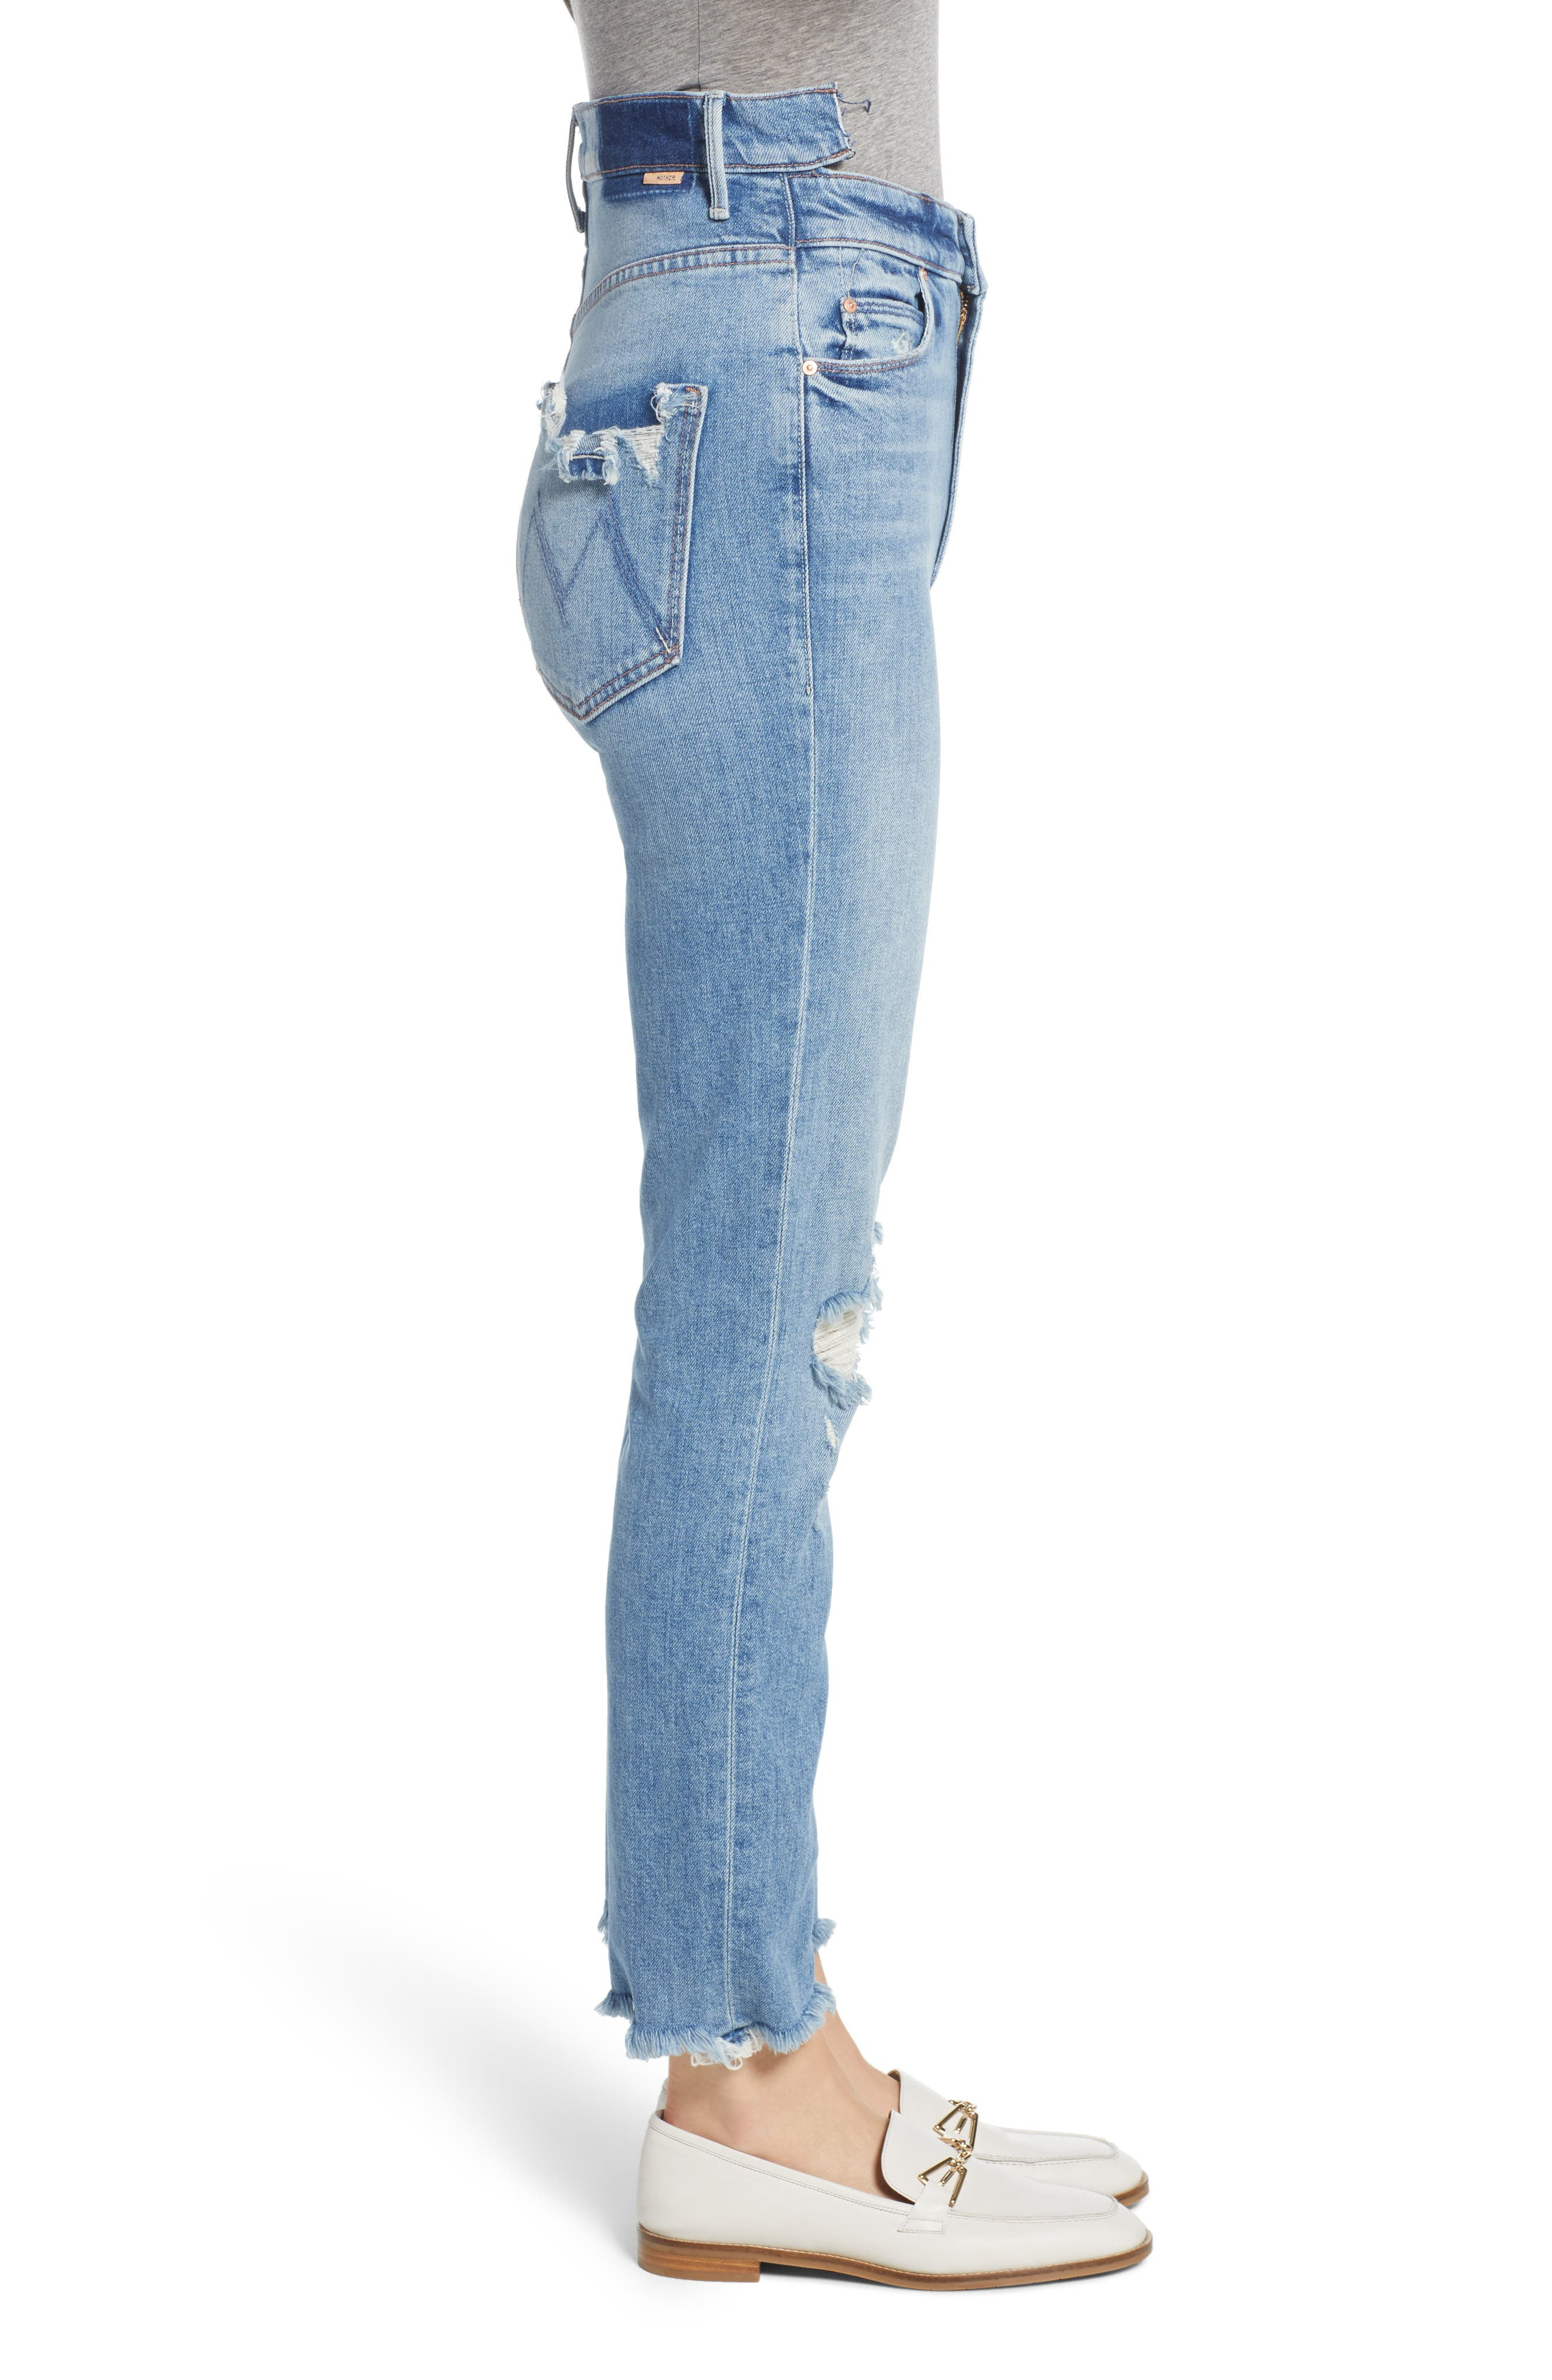 Dazzler Shift Step Waistband Jeans,                             Alternate thumbnail 3, color,                             452